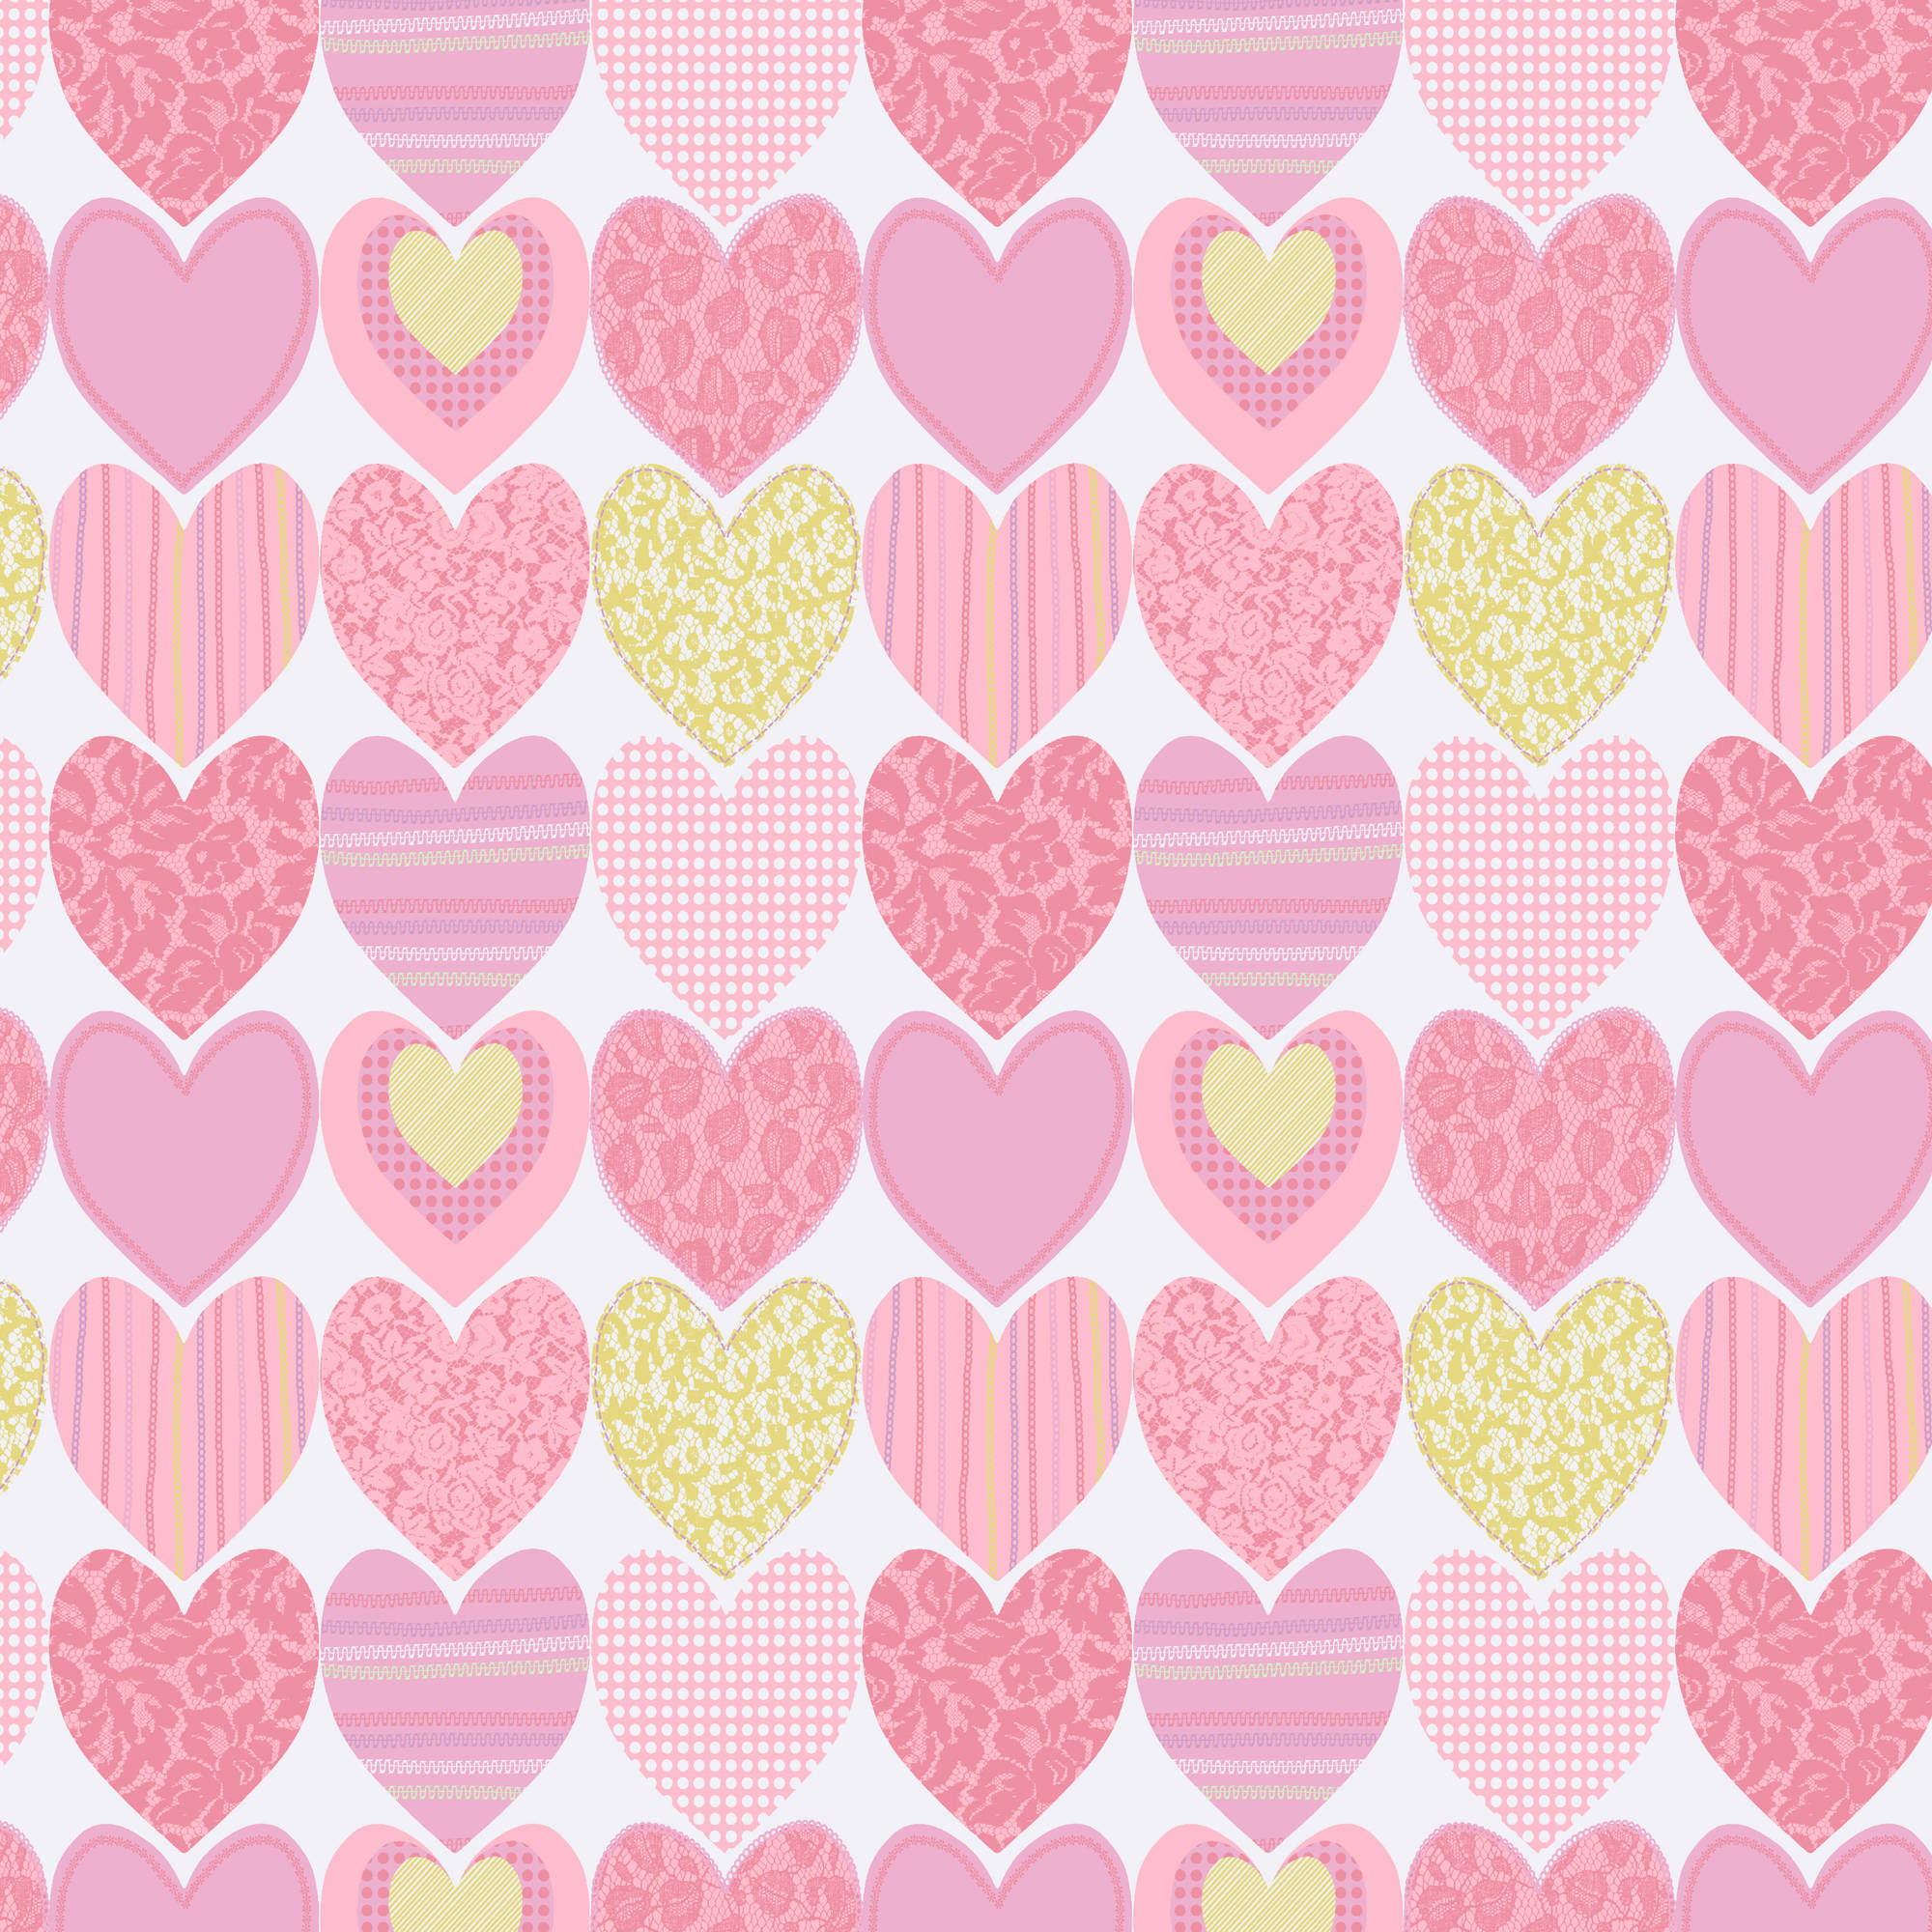 Waverly Inspirations Hearts Carnation 100% Cotton Print fabric, Quilting fabric, Home Decor ,44'', 140GSM